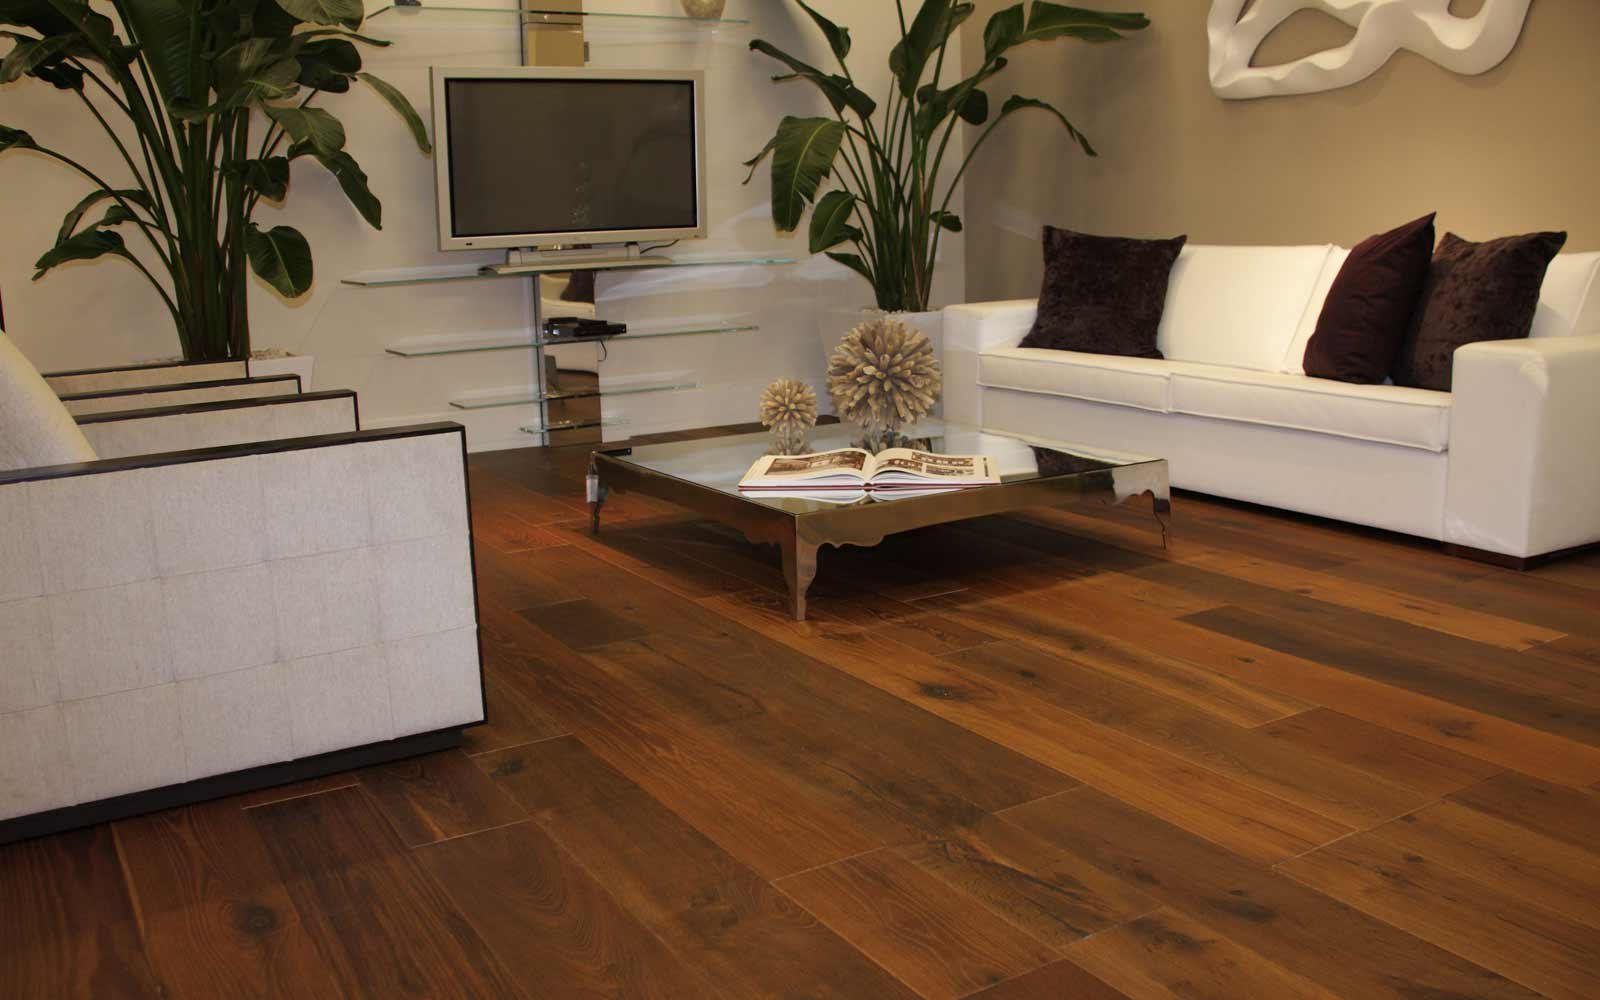 brazilian koa hardwood flooring for your home racedeck flooring cost home design ideas racedeck flooring